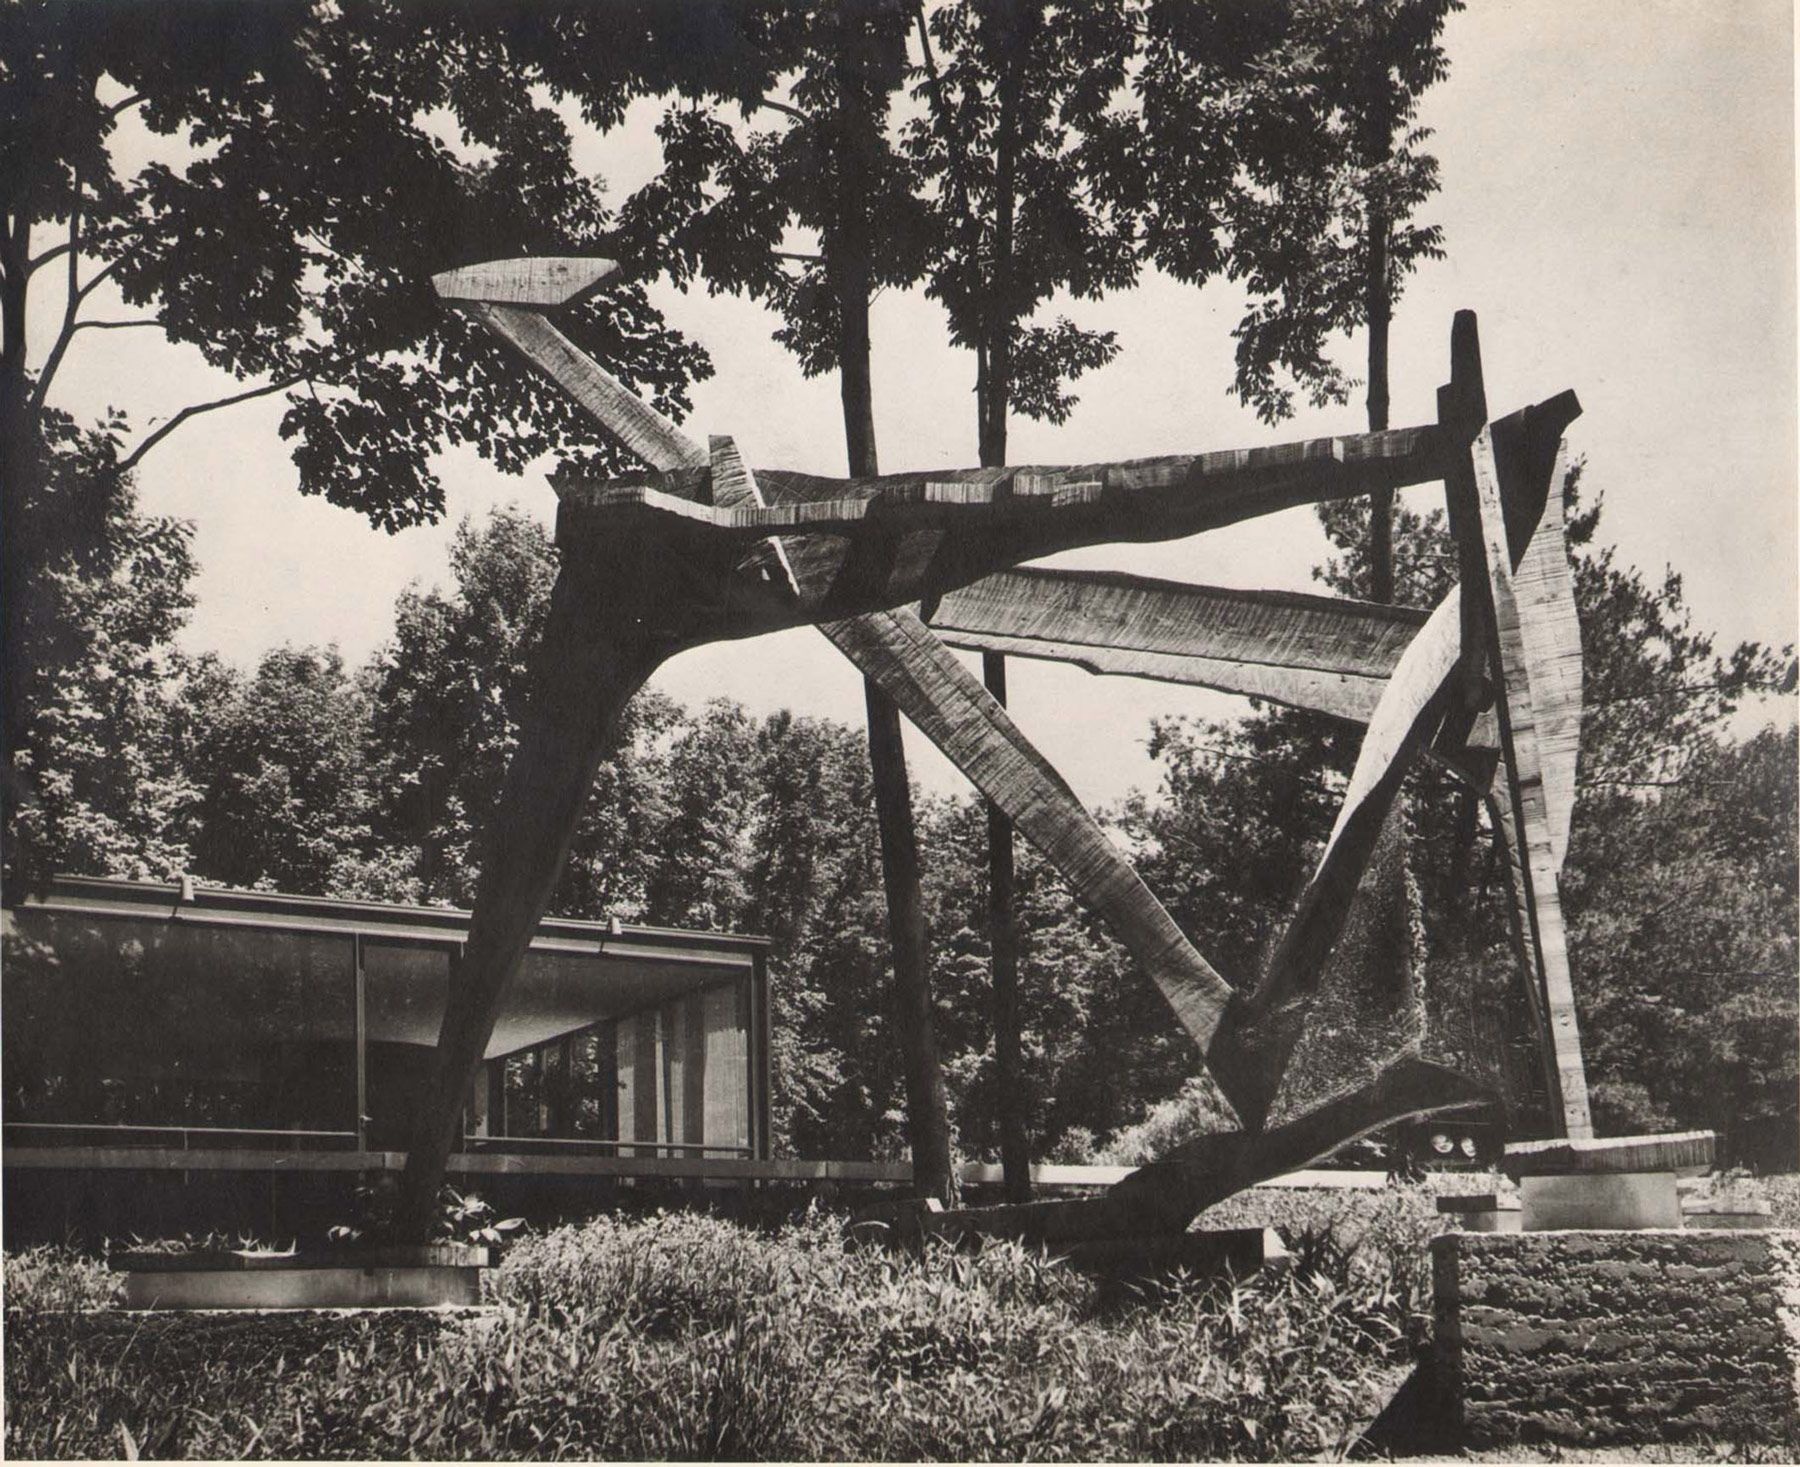 Frederick Kiesler, Wooden Galaxy for Philip Johnson's <i>Glass House</i>, New Canaan (Connecticut), 1953. (© 2016 Austrian Frederick and Lillian Kiesler Private Foundation, Vienna)